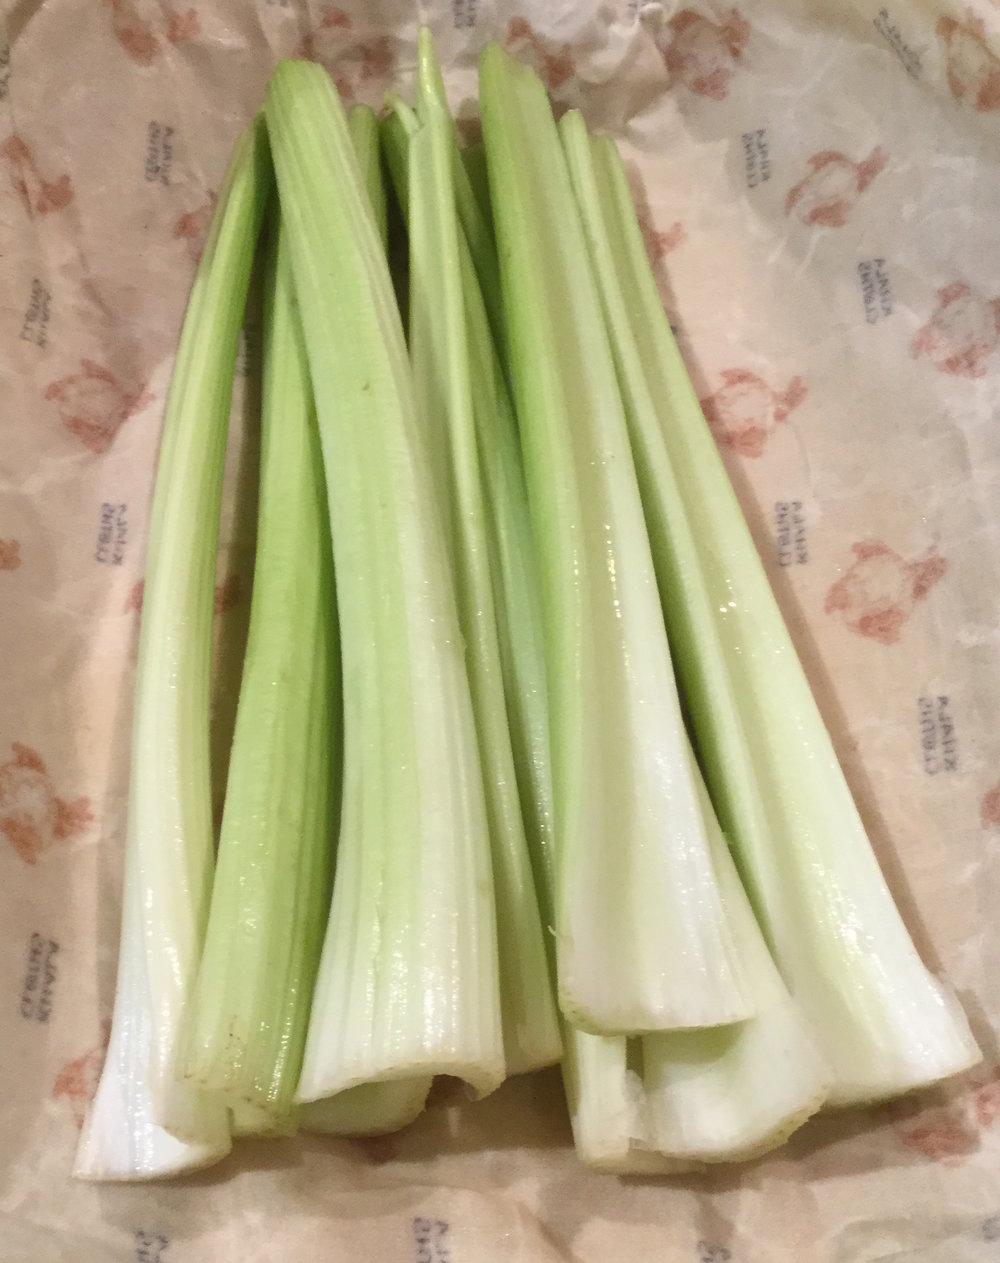 celery unwrapped on a Khala Cloth